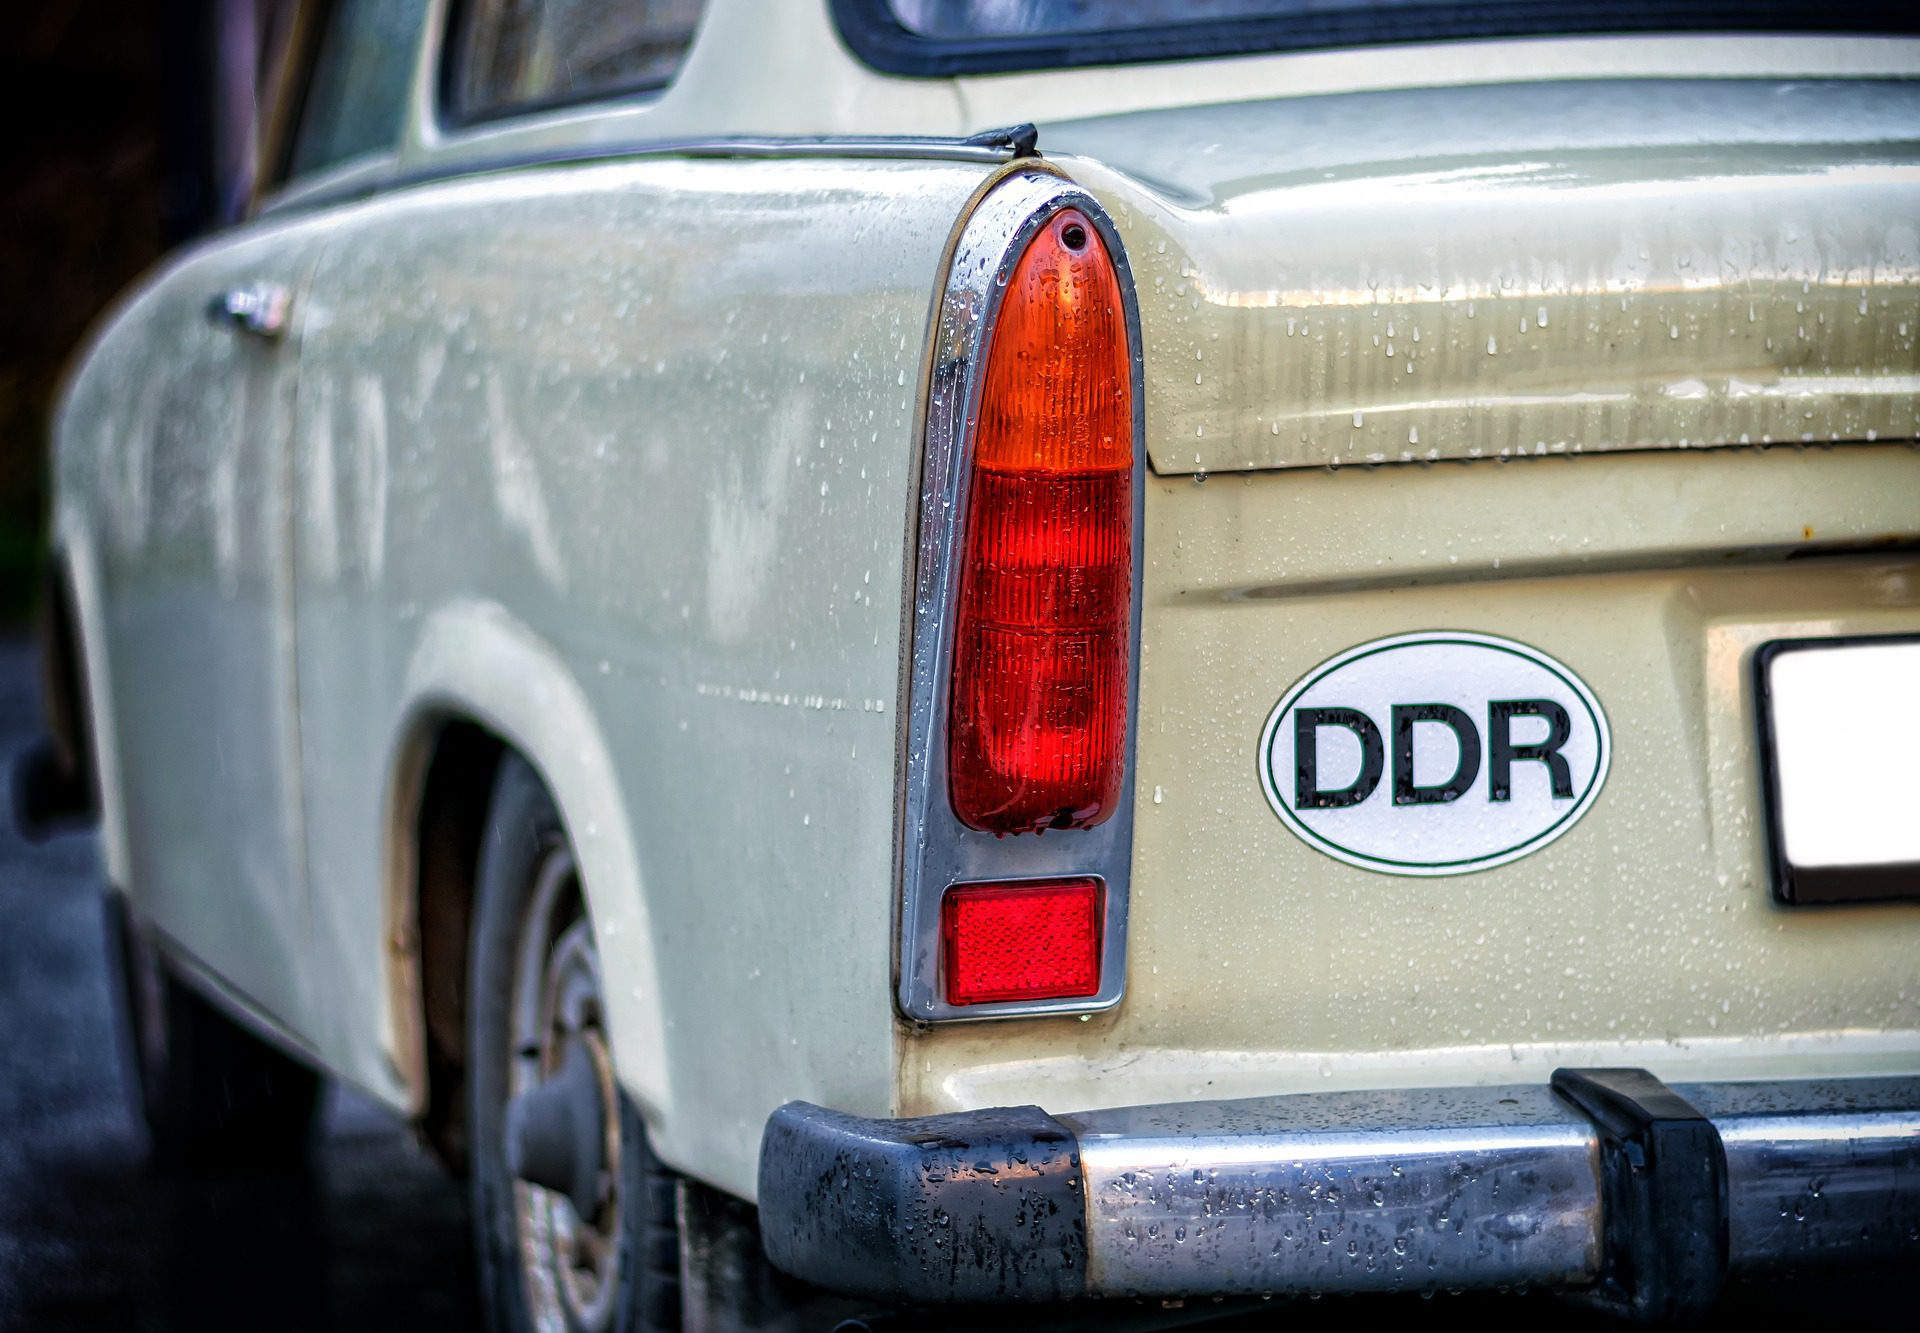 Made in DDR - Trabant